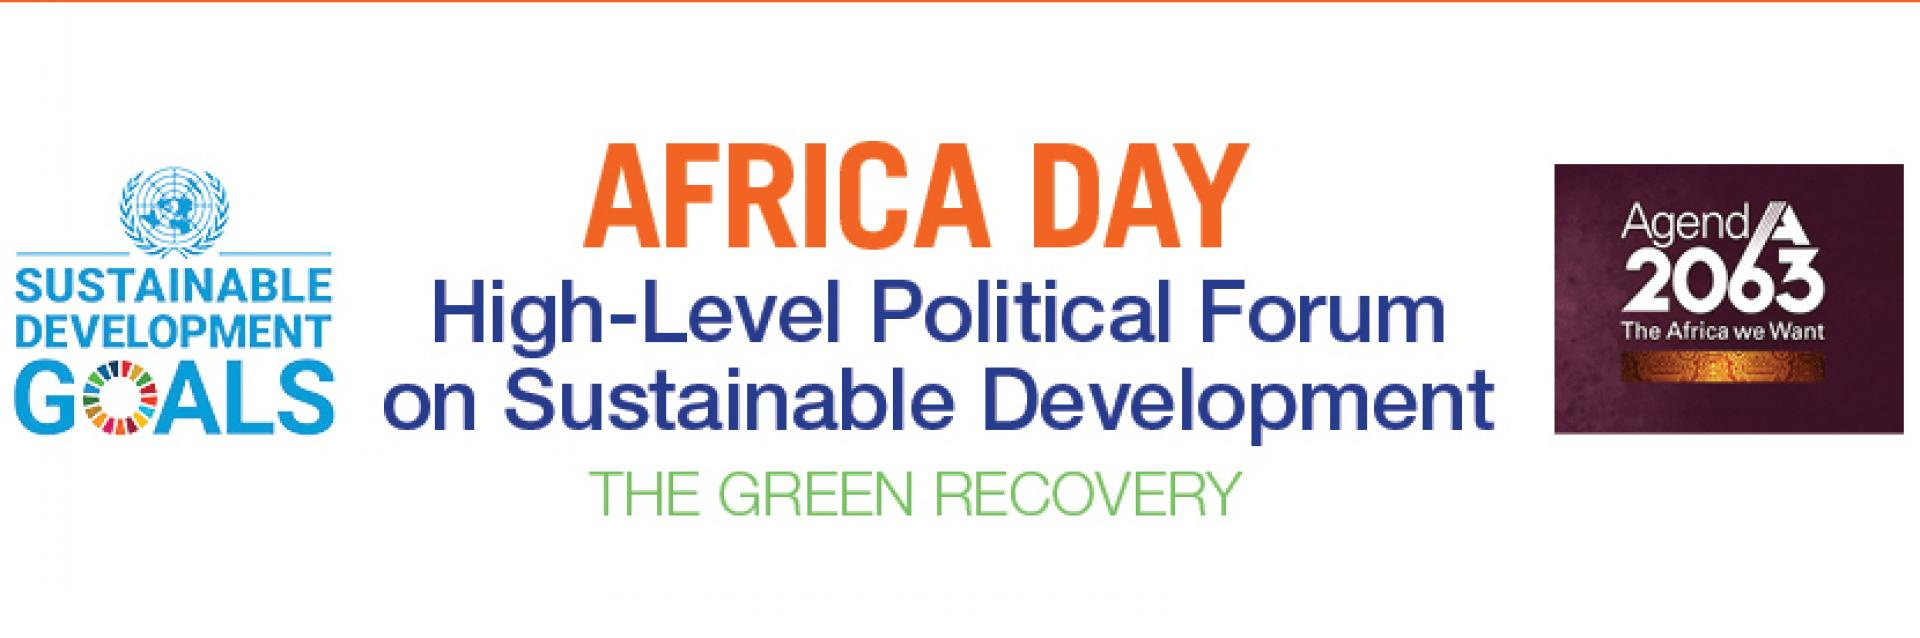 Africa Day at the High-level Political Forum on Sustainable Development